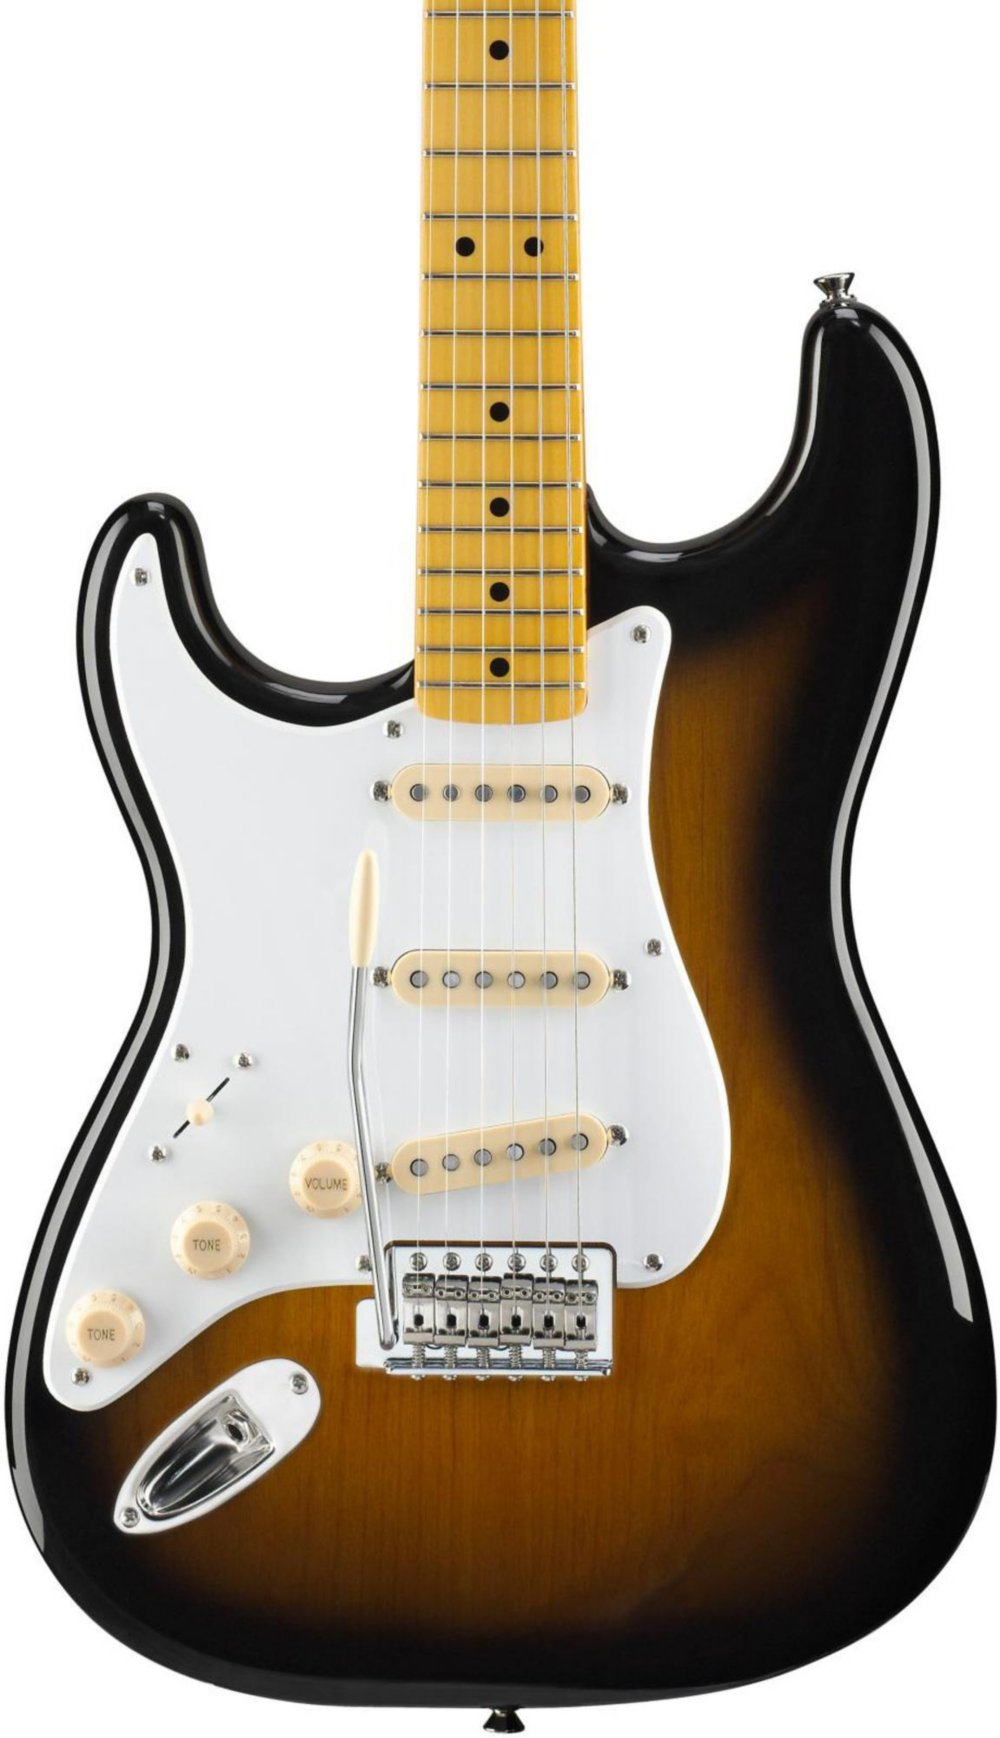 Cheap Squier Classic Vibe Left-Handed 50s Stratocaster Electric Guitar 2-Color Sunburst Black Friday & Cyber Monday 2019